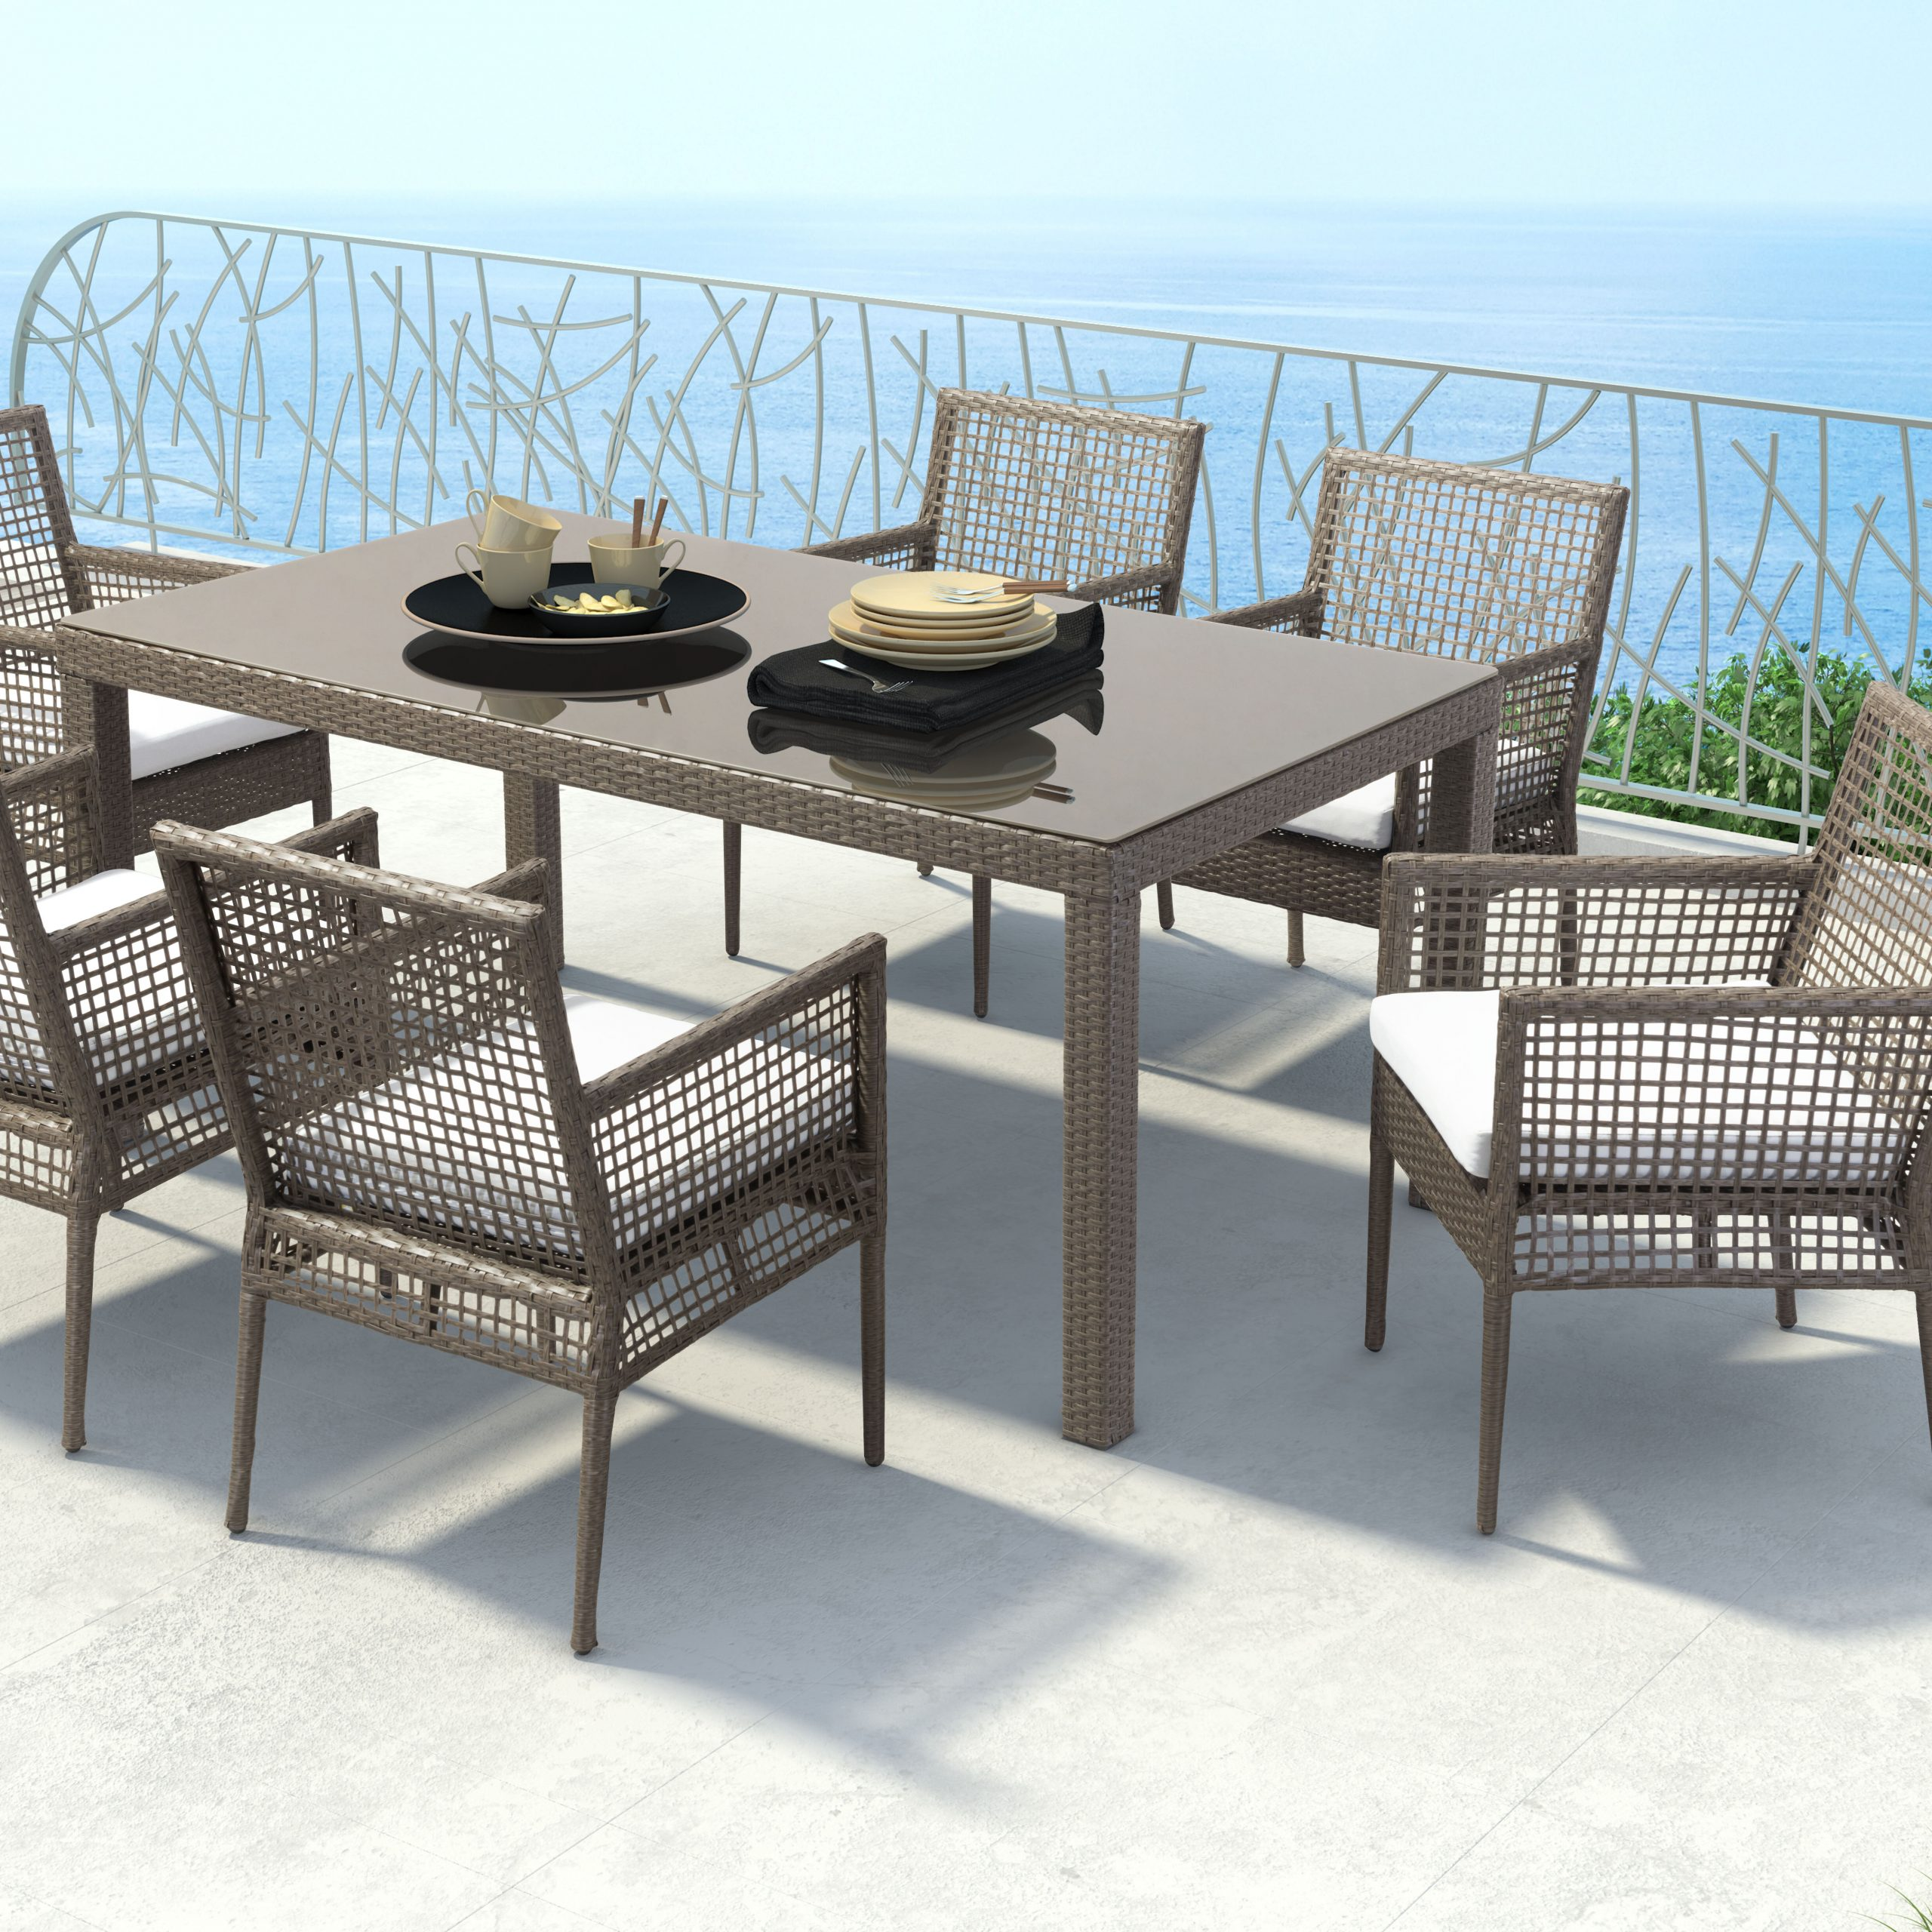 Baca Patio Sofas With Cushions With Regard To Preferred Brayden Studio Baca Patio Dining Chair With Cushion (View 7 of 25)